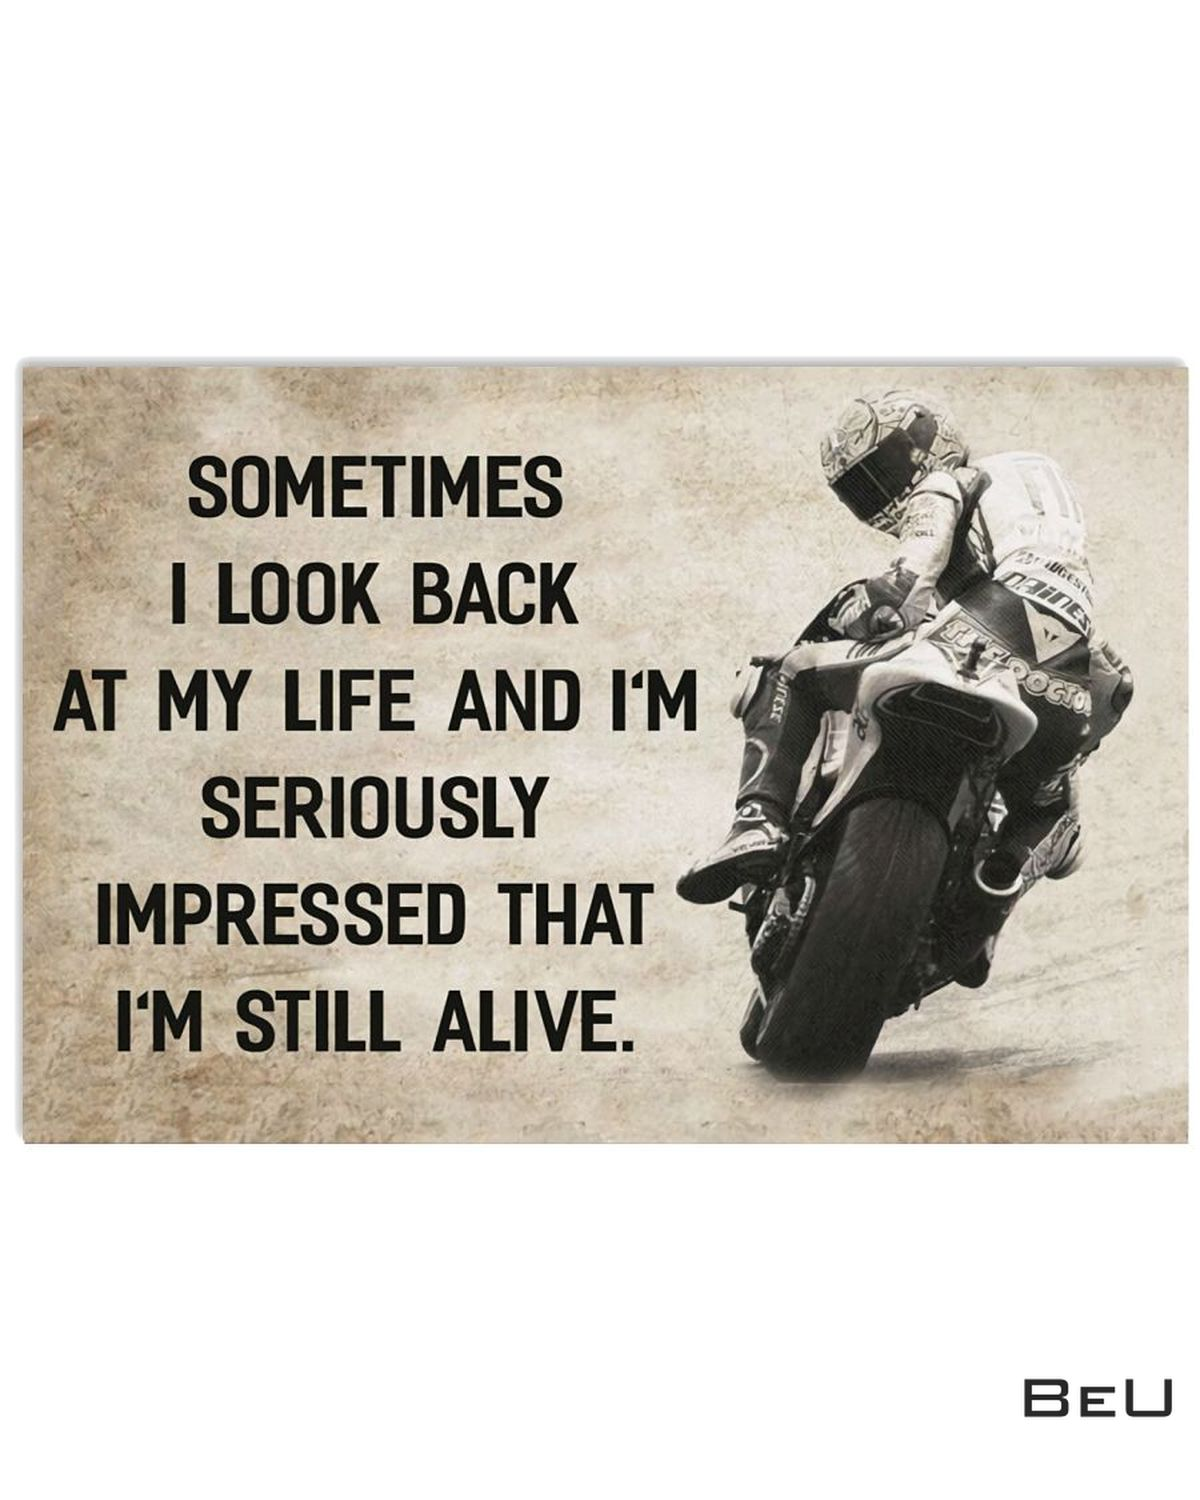 Sometimes I Look Back At My Life And I'm Seriously Impressed That I'm Still Alive Poster